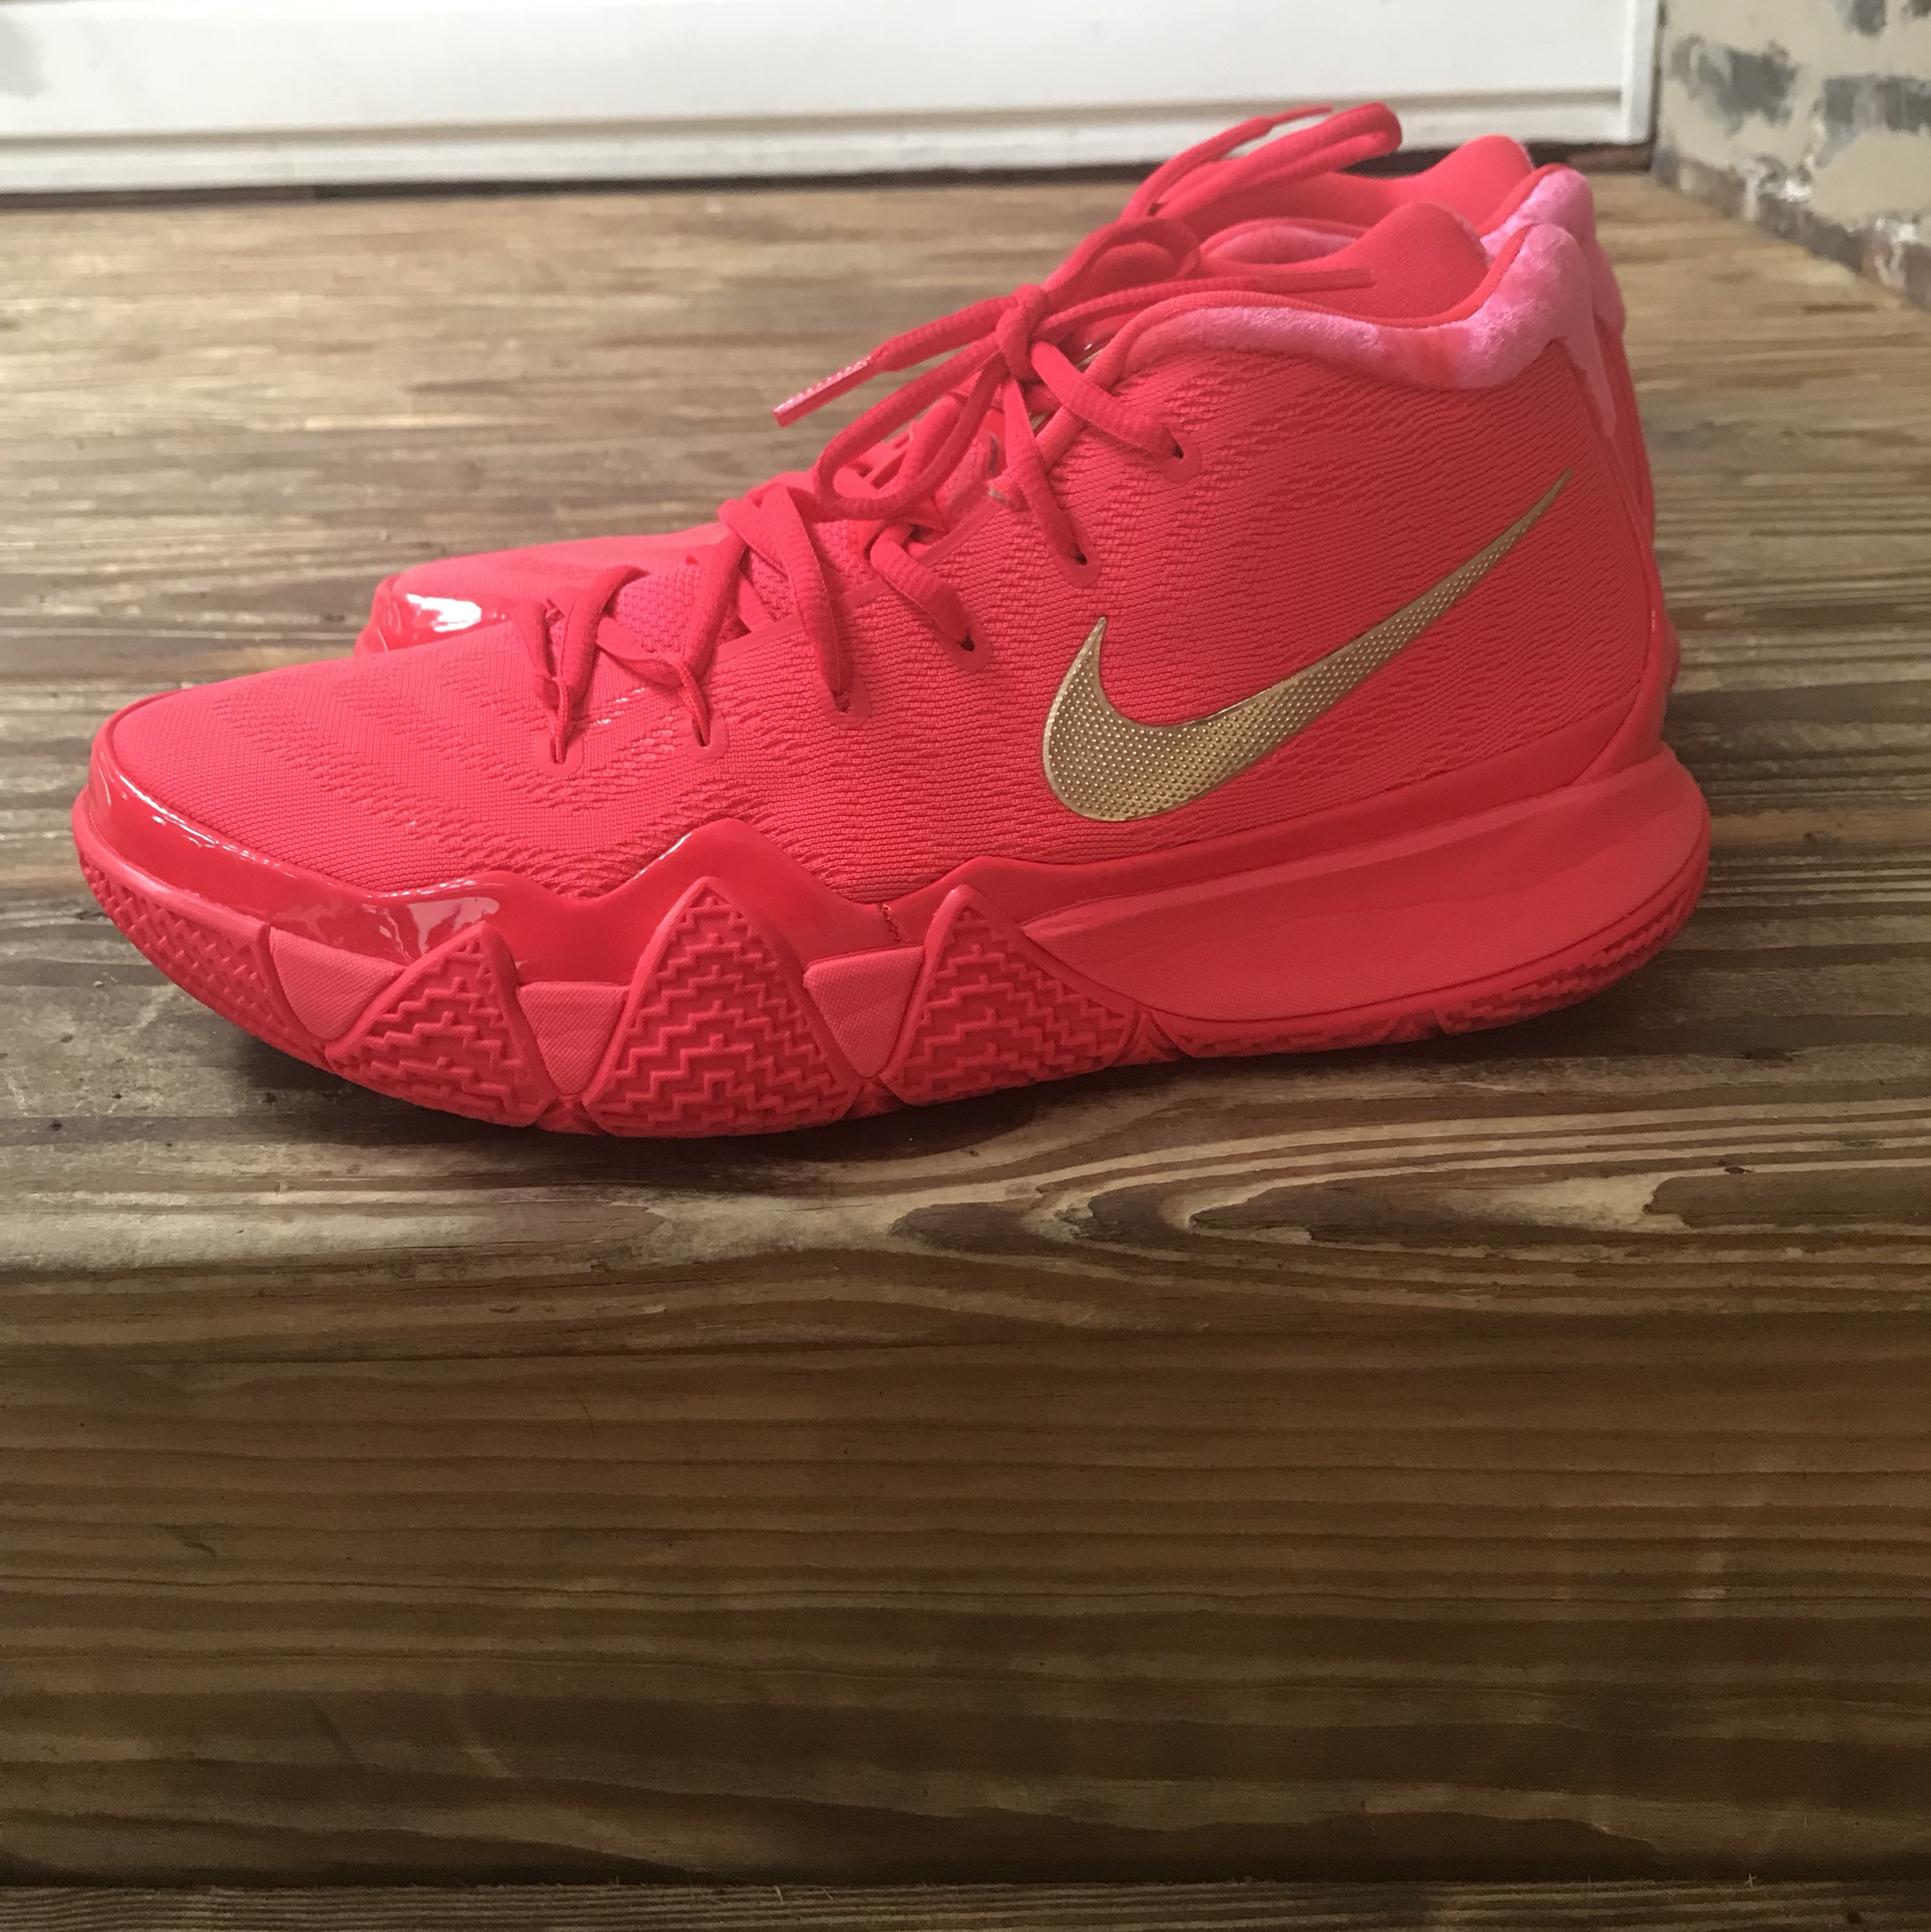 the latest ffb3f e5e36 Nike Kyrie Irving 4 Red Carpet Gold Metallic shoes!... - Depop